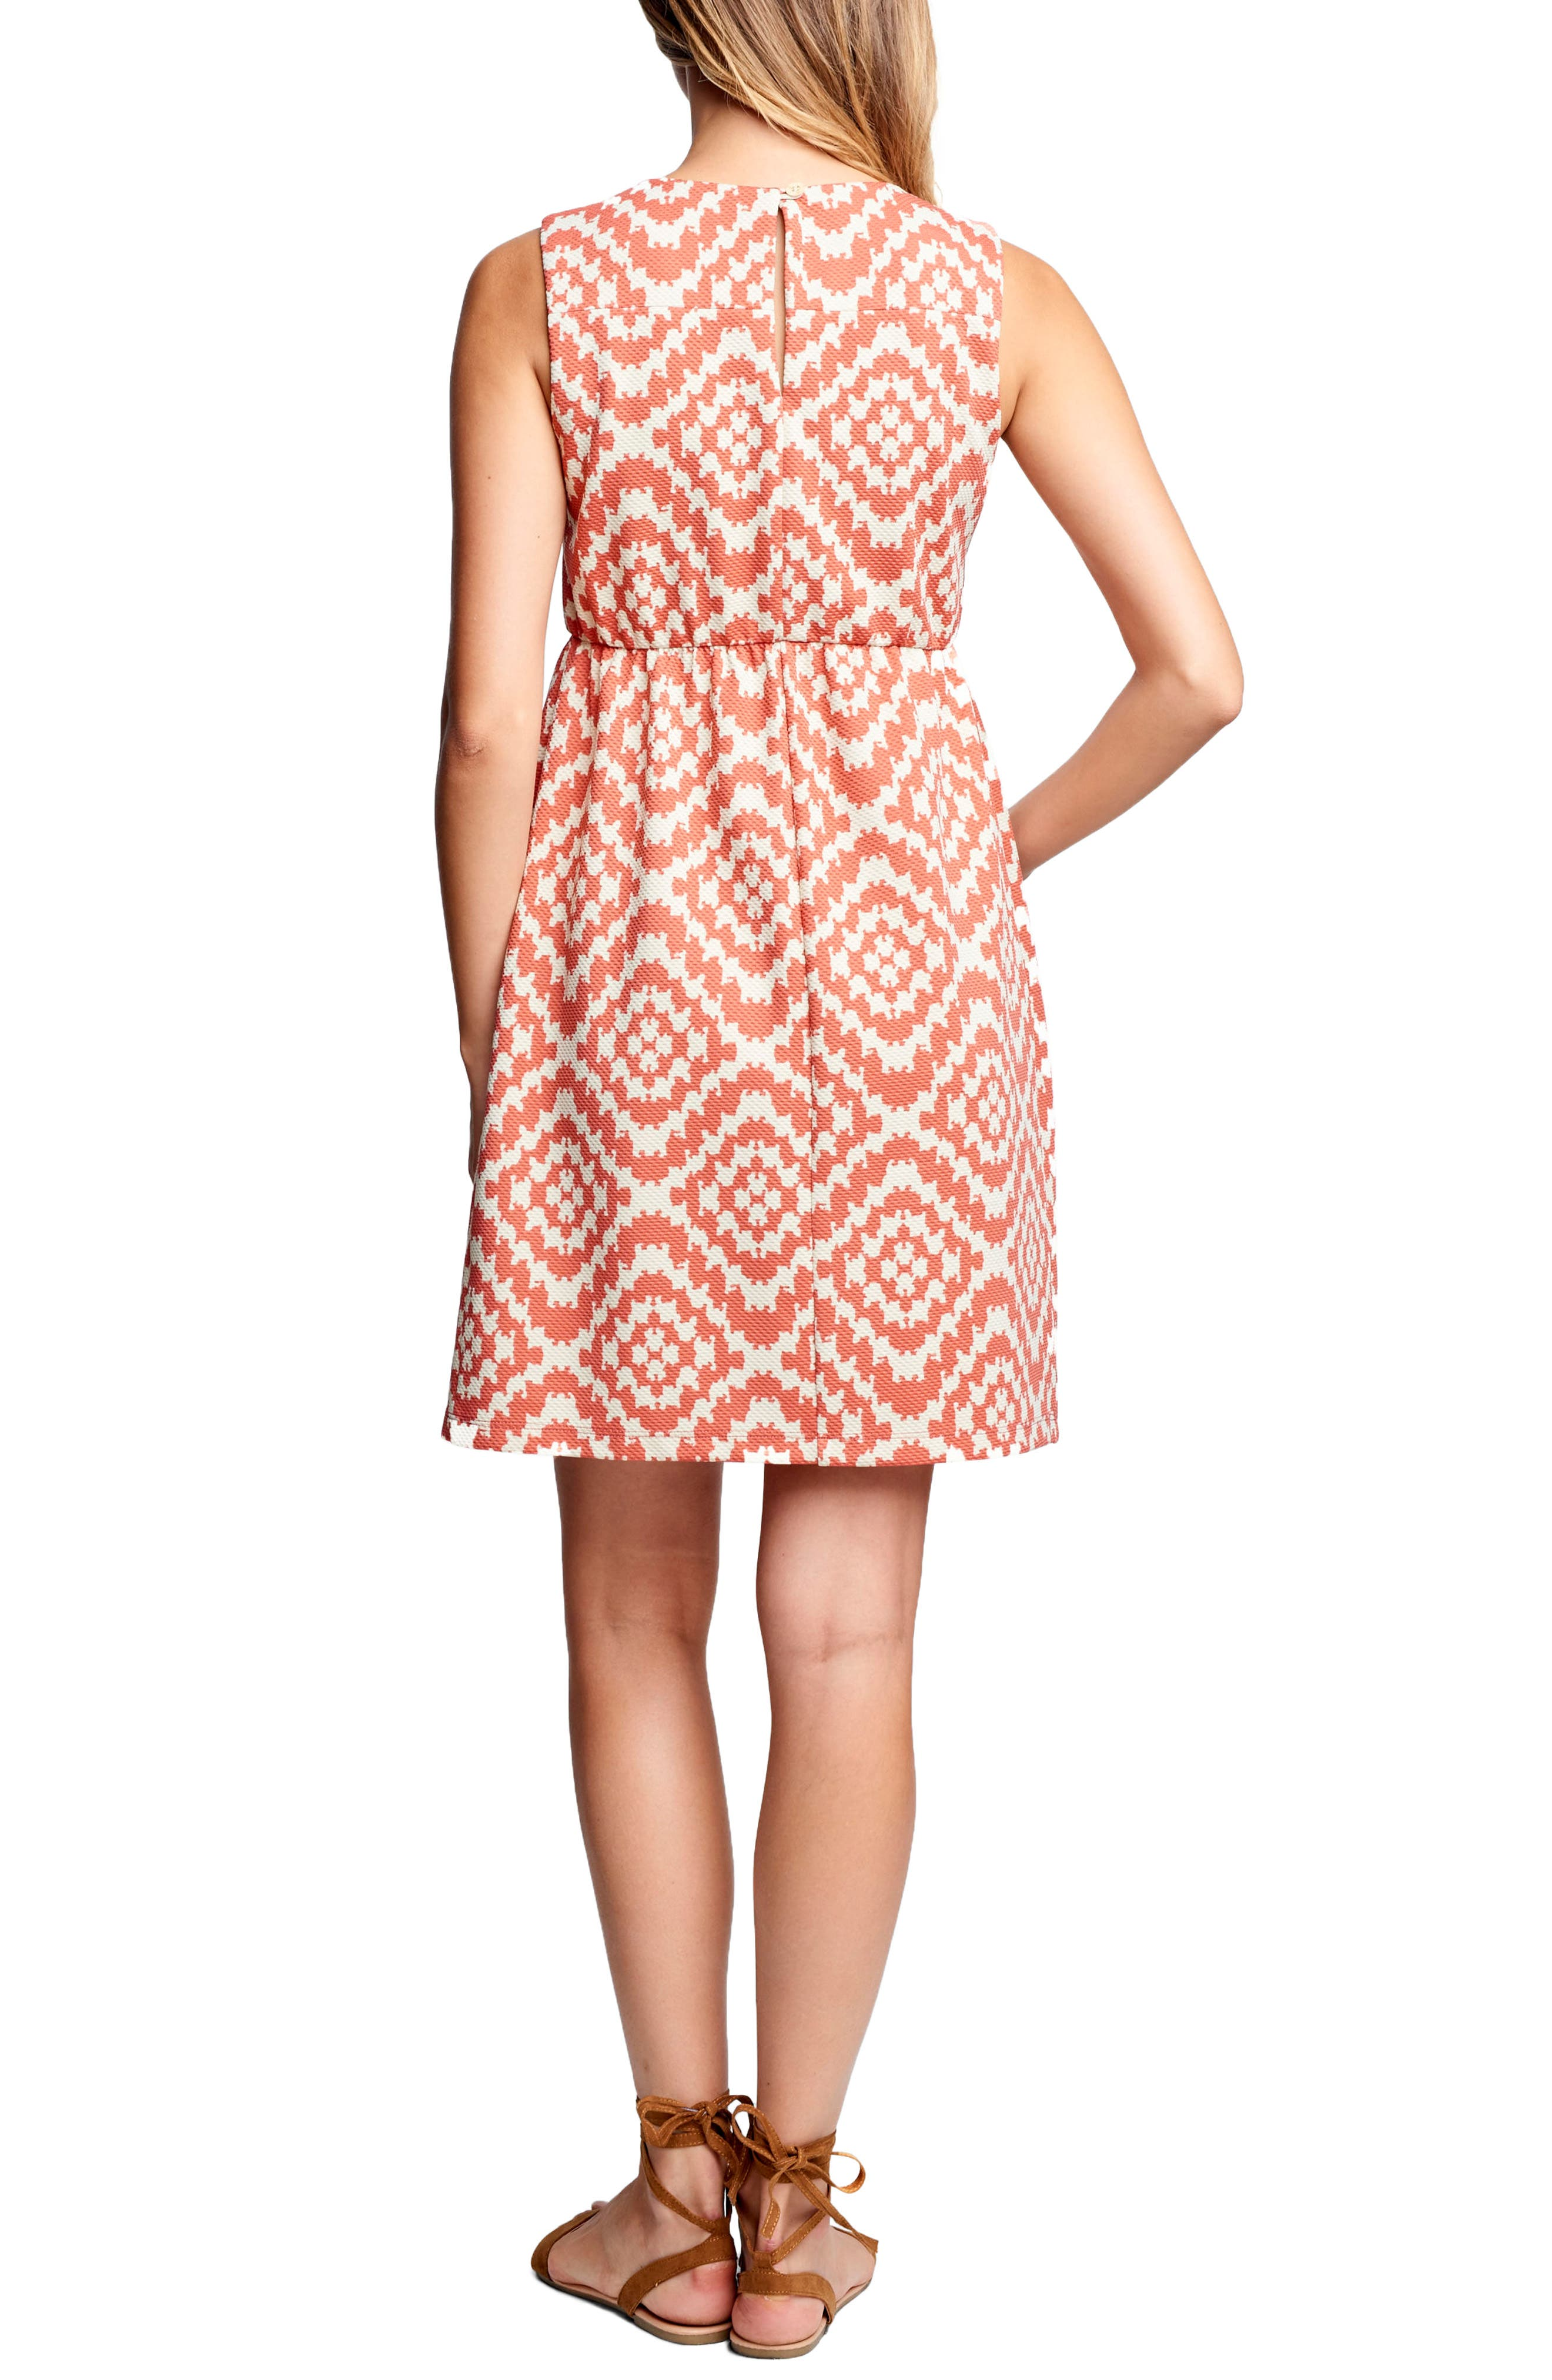 MATERNAL AMERICA, 'Vintage' Textured Maternity Dress, Alternate thumbnail 2, color, APRICOT TAPESTRY